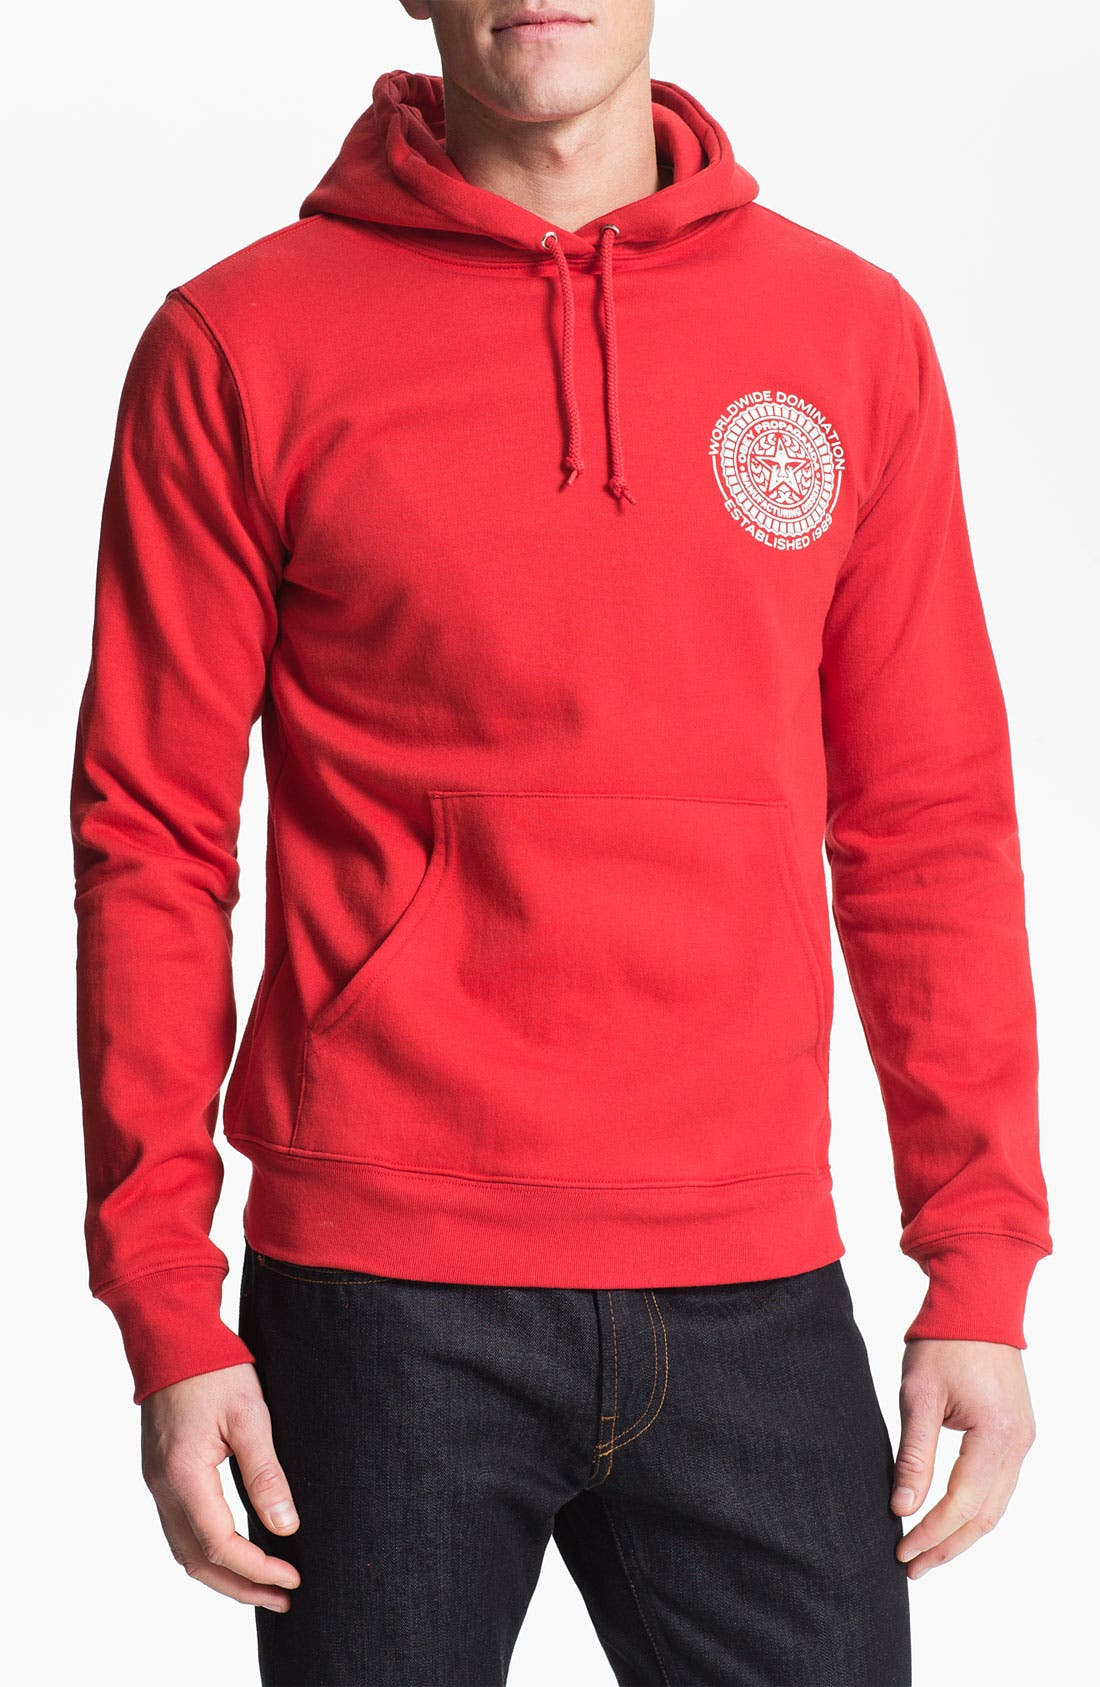 Alternate Image 1 Selected - Obey 'Legion' Graphic Hoodie